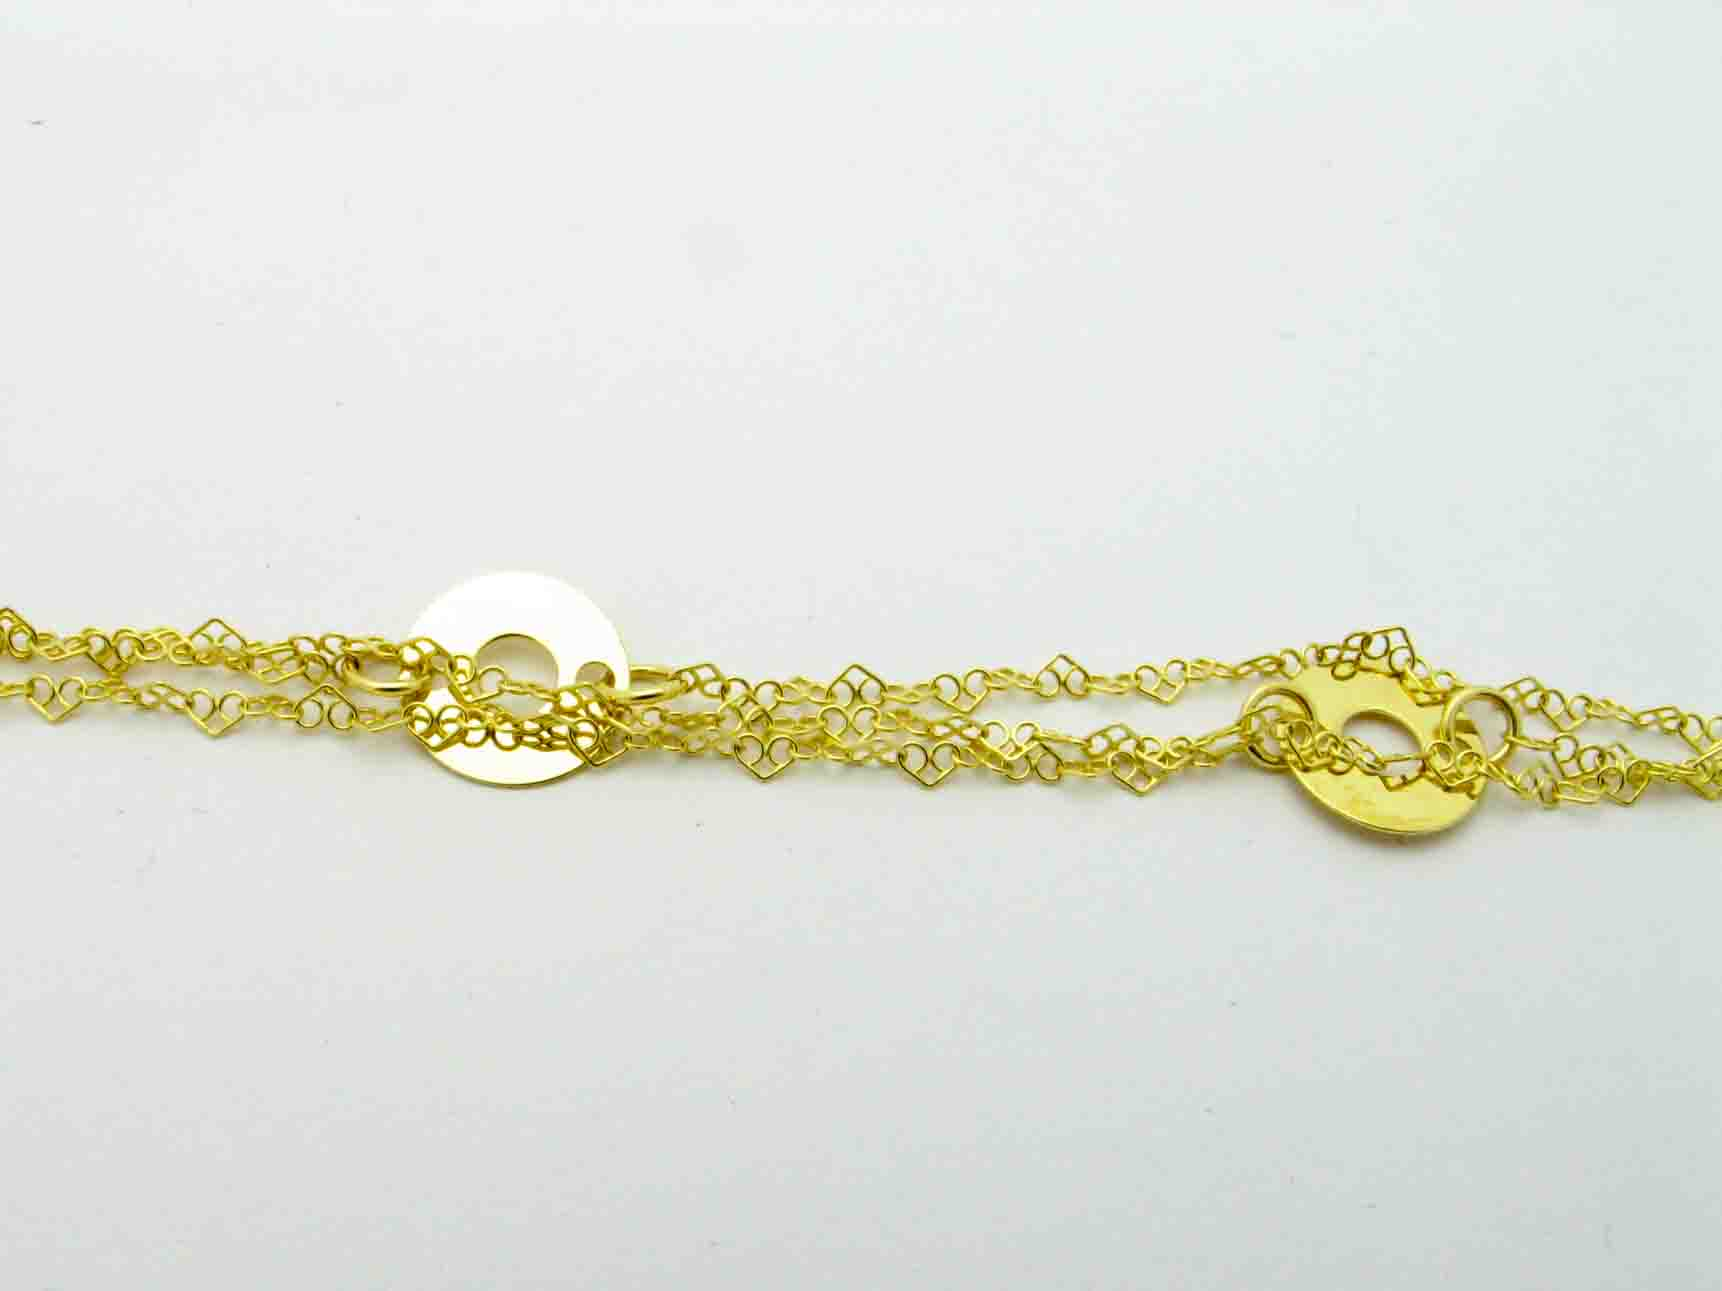 11838 14K YELLOW GOLD GEO ANKLET